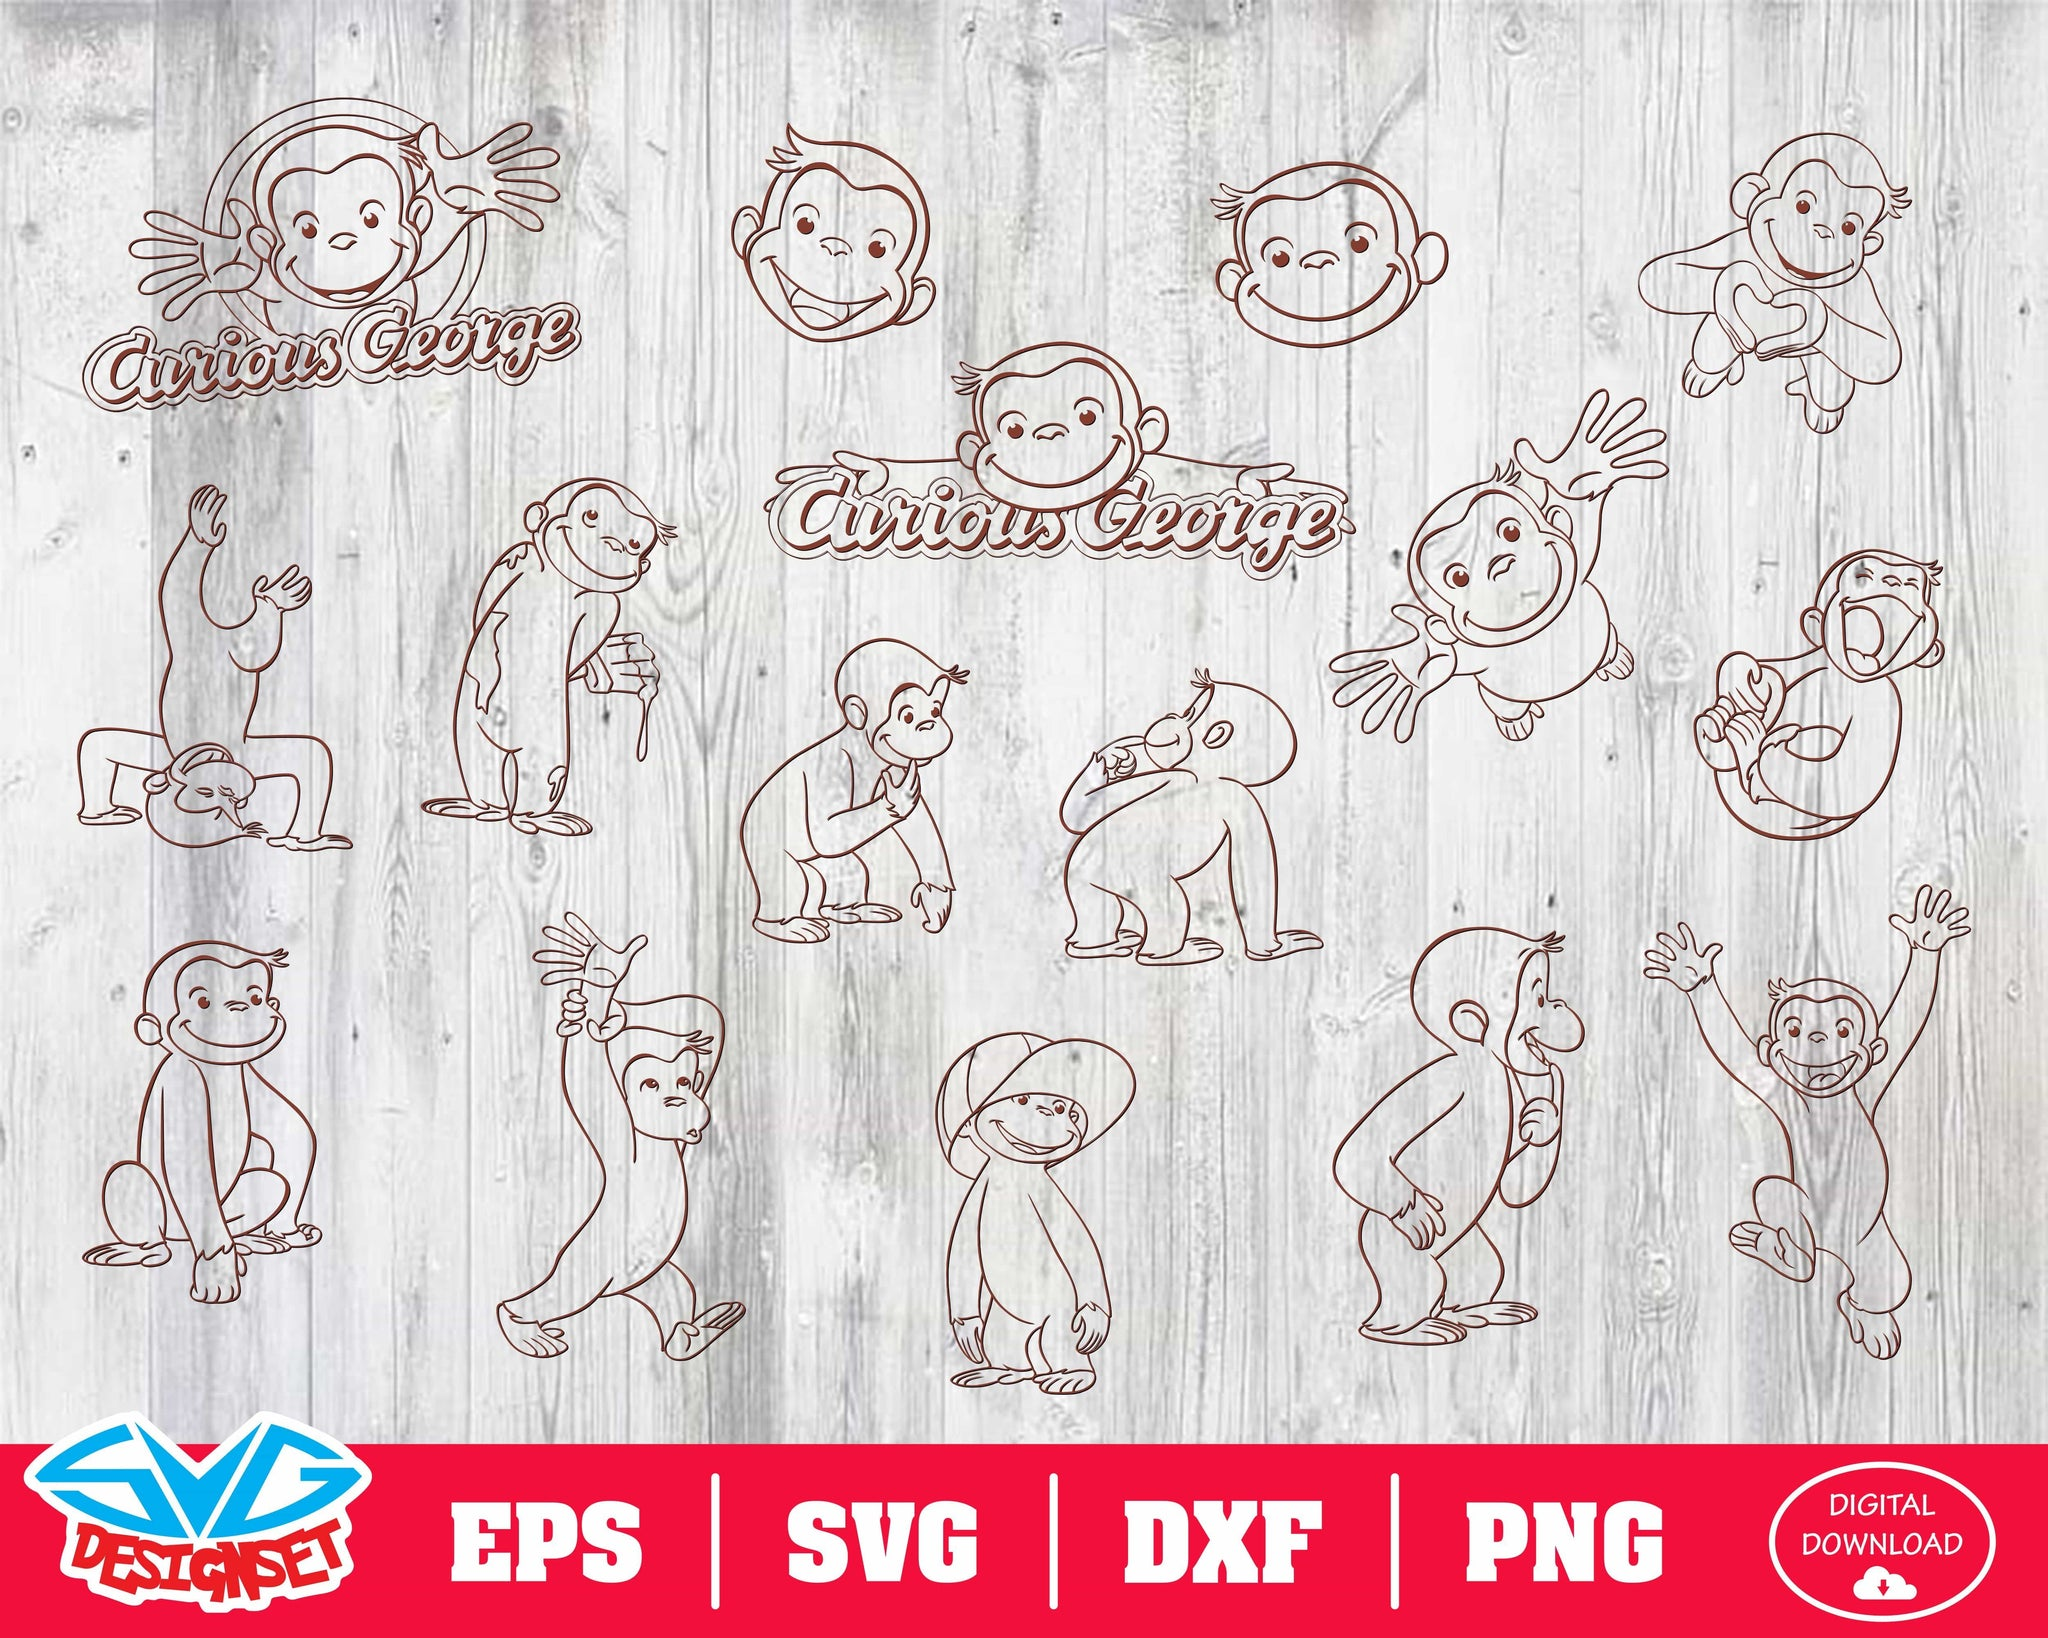 Curious George Svg, Dxf, Eps, Png, Clipart, Silhouette and Cutfiles #3